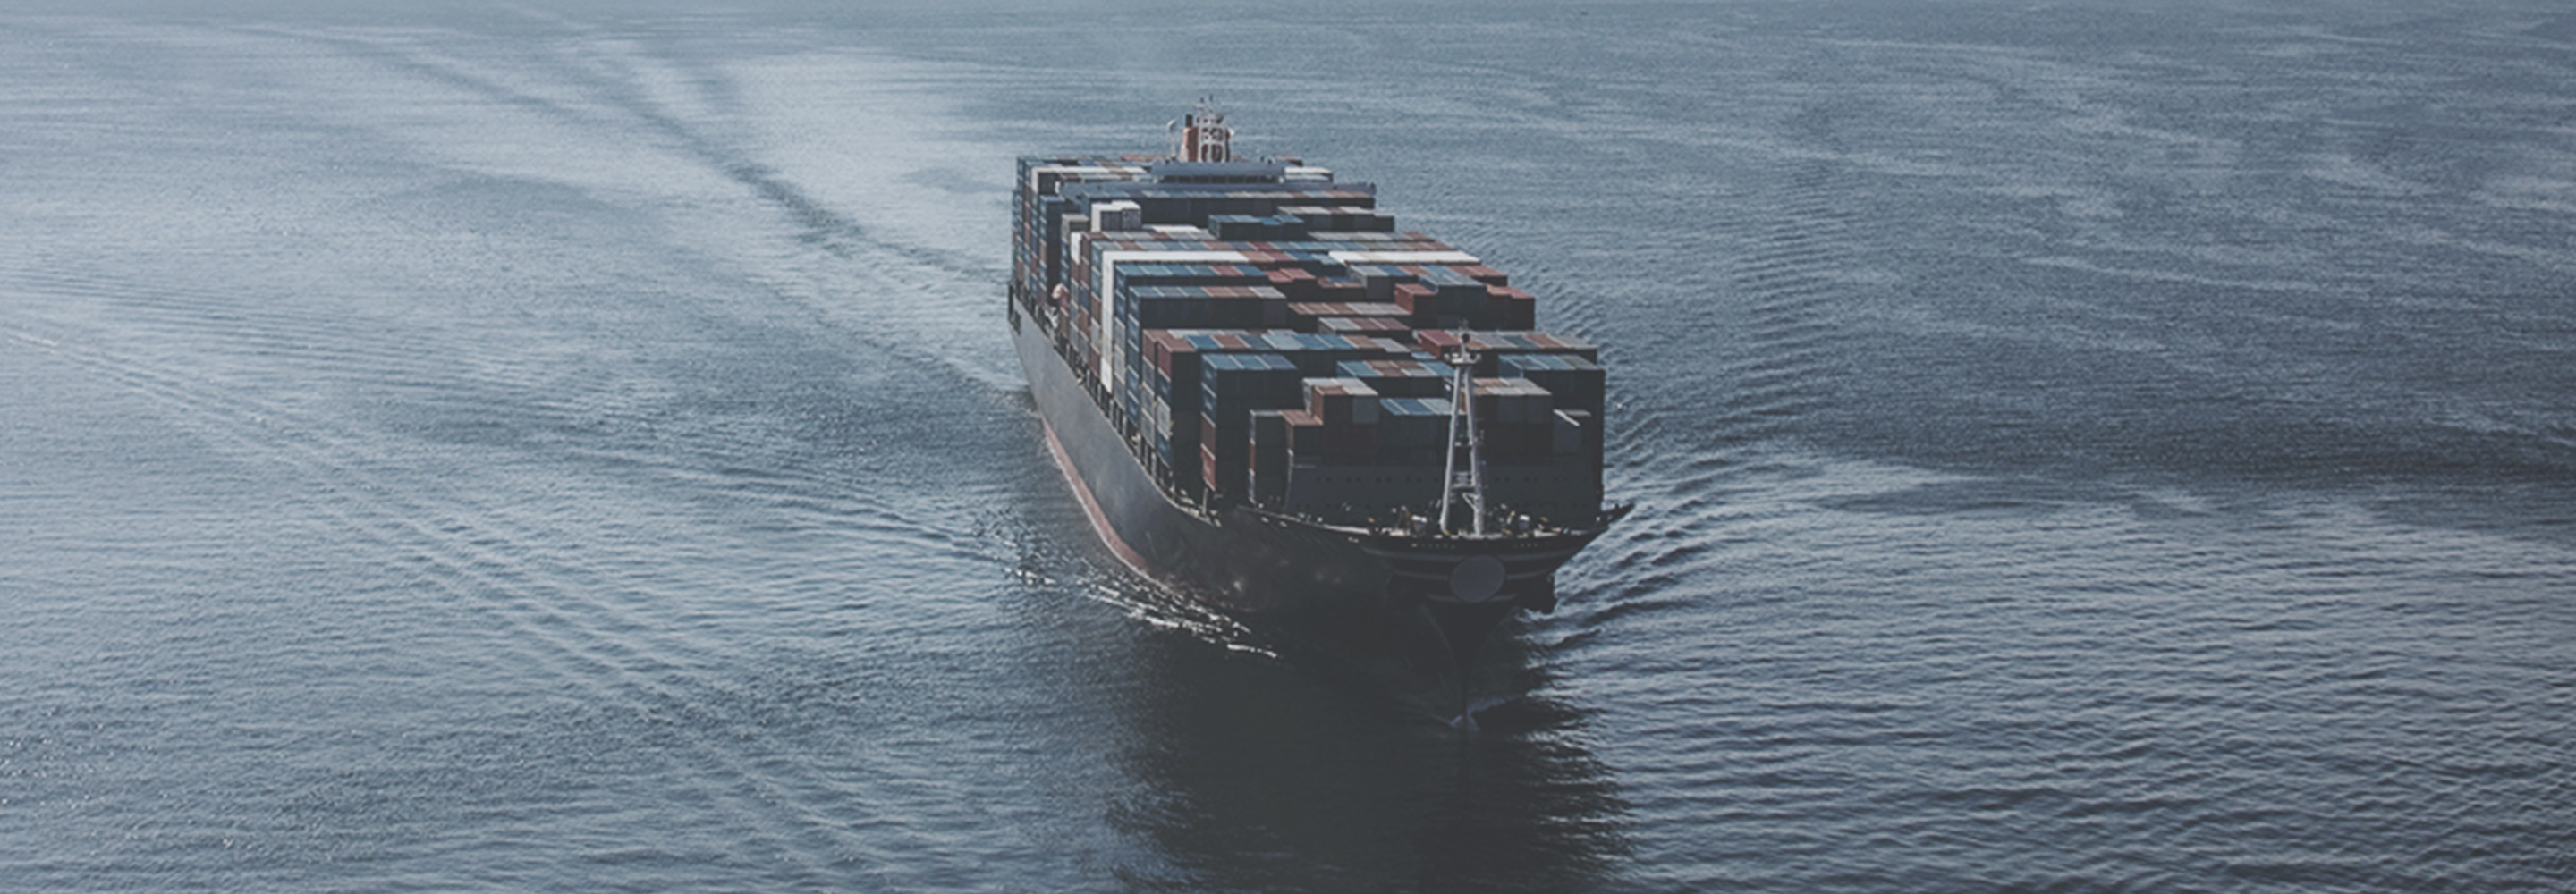 Ship sailing the ocean carrying shipping containers